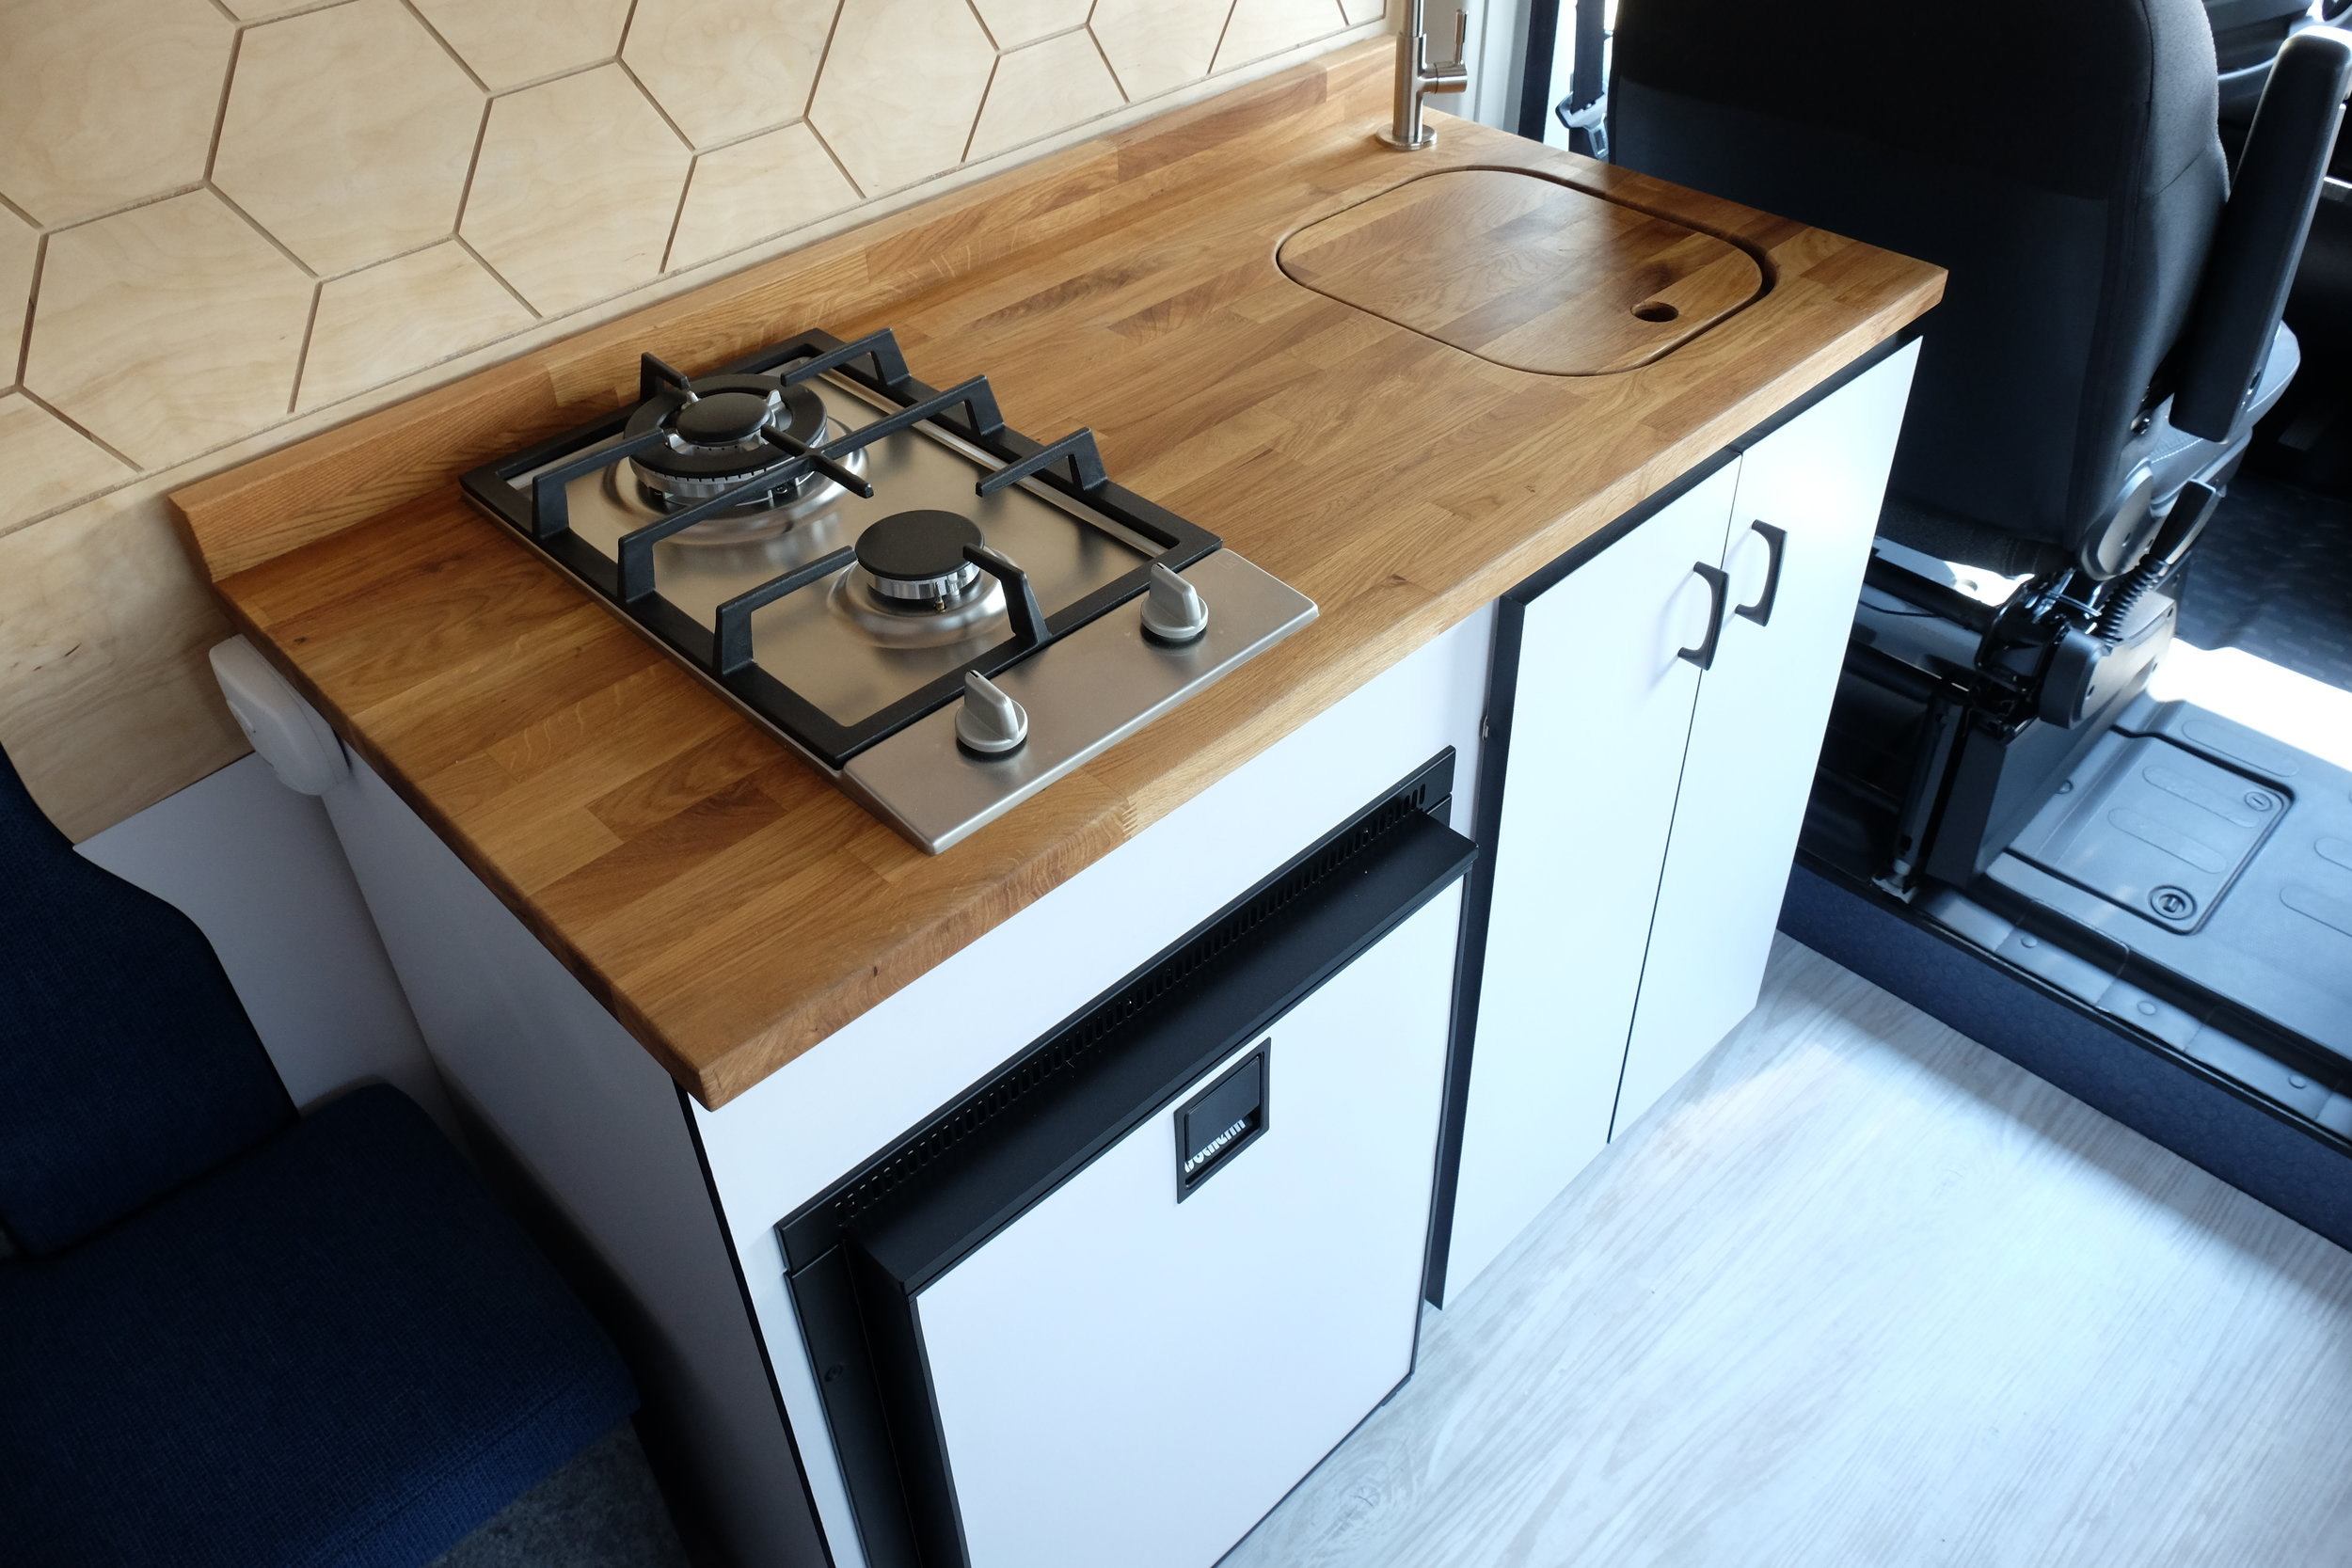 Vanlife Customs: Camper Van Kitchen